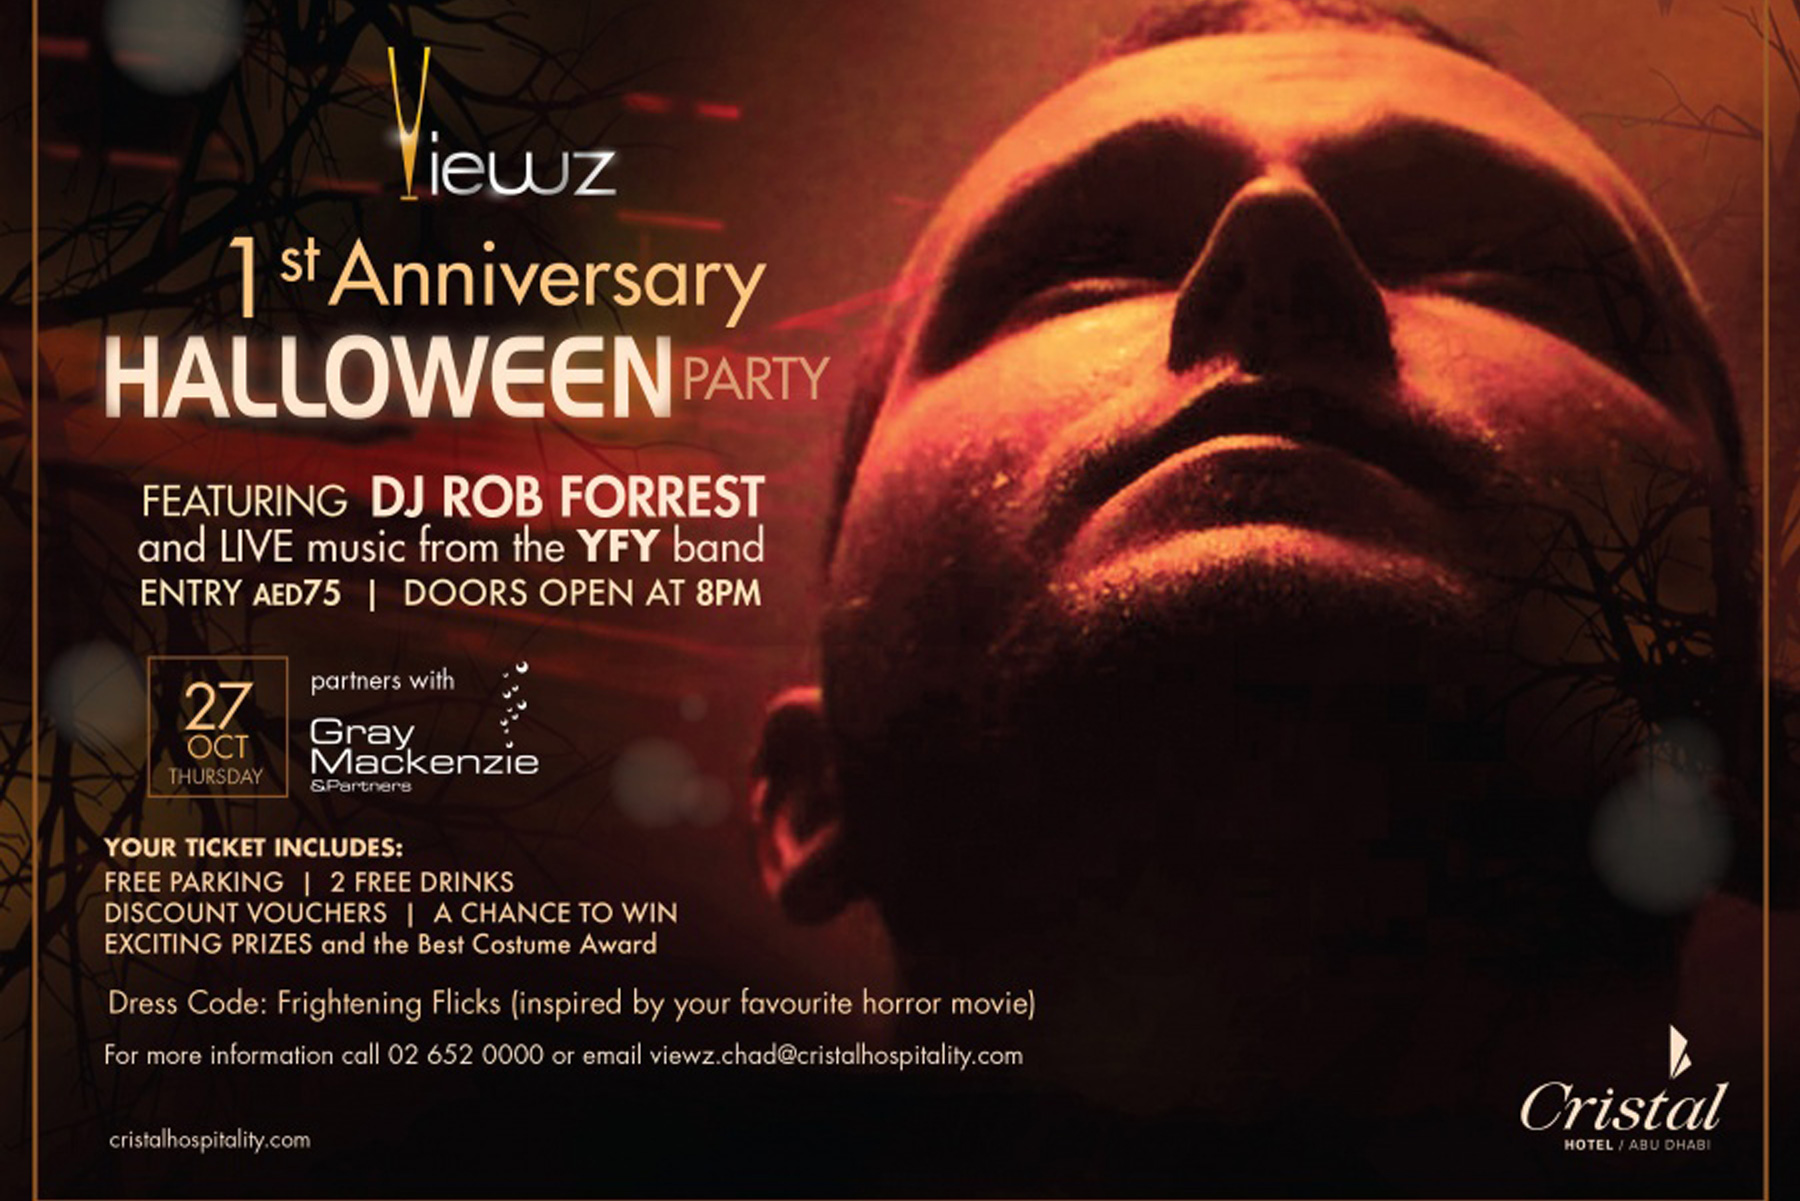 VIEWZ CELEBRATES ITS FIRST ANNIVERSARY WITH A HALLOWEEN PARTY